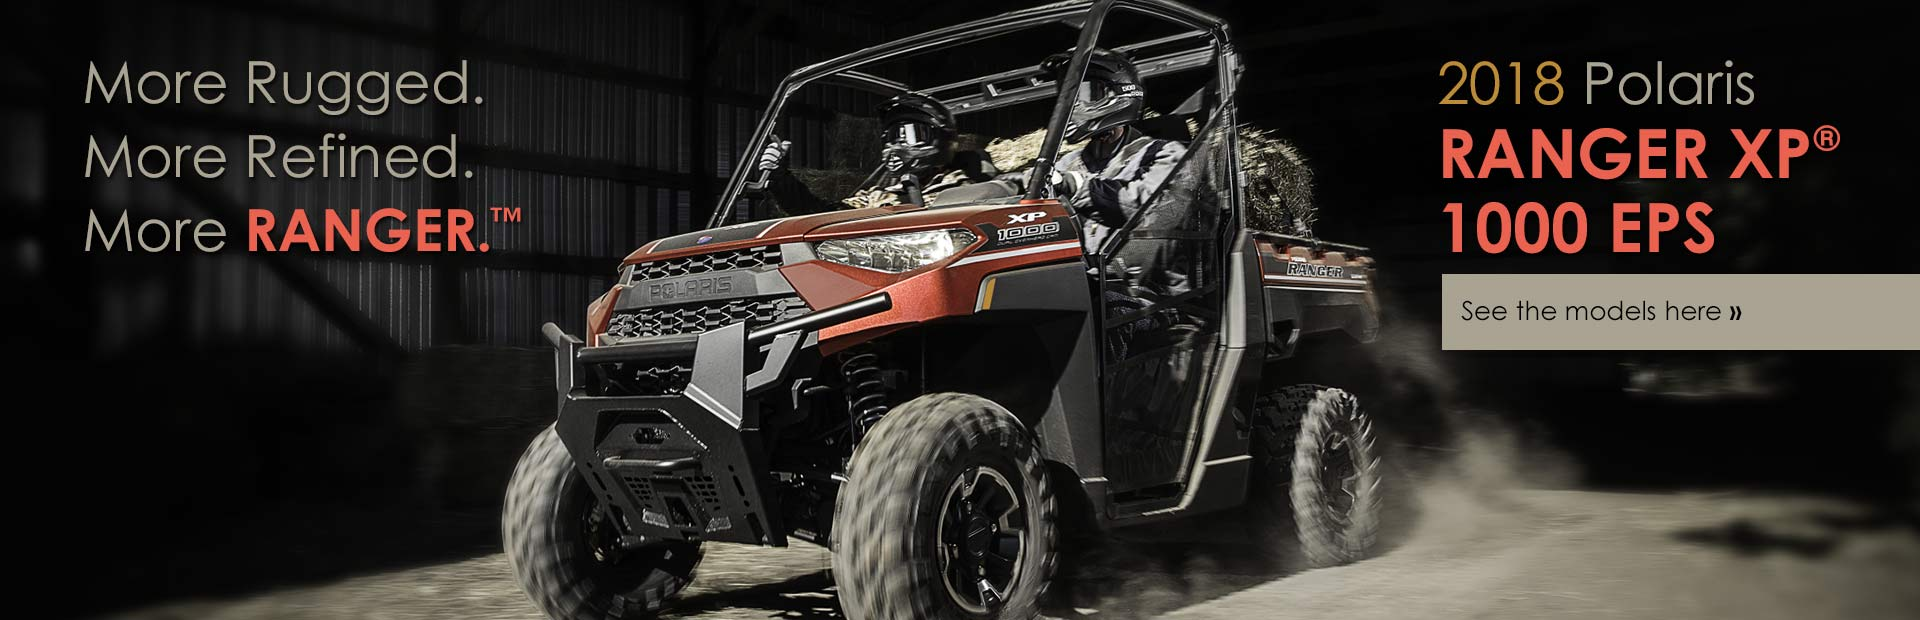 2018 Polaris RANGER XP® 1000 EPS: Click here to view the models.